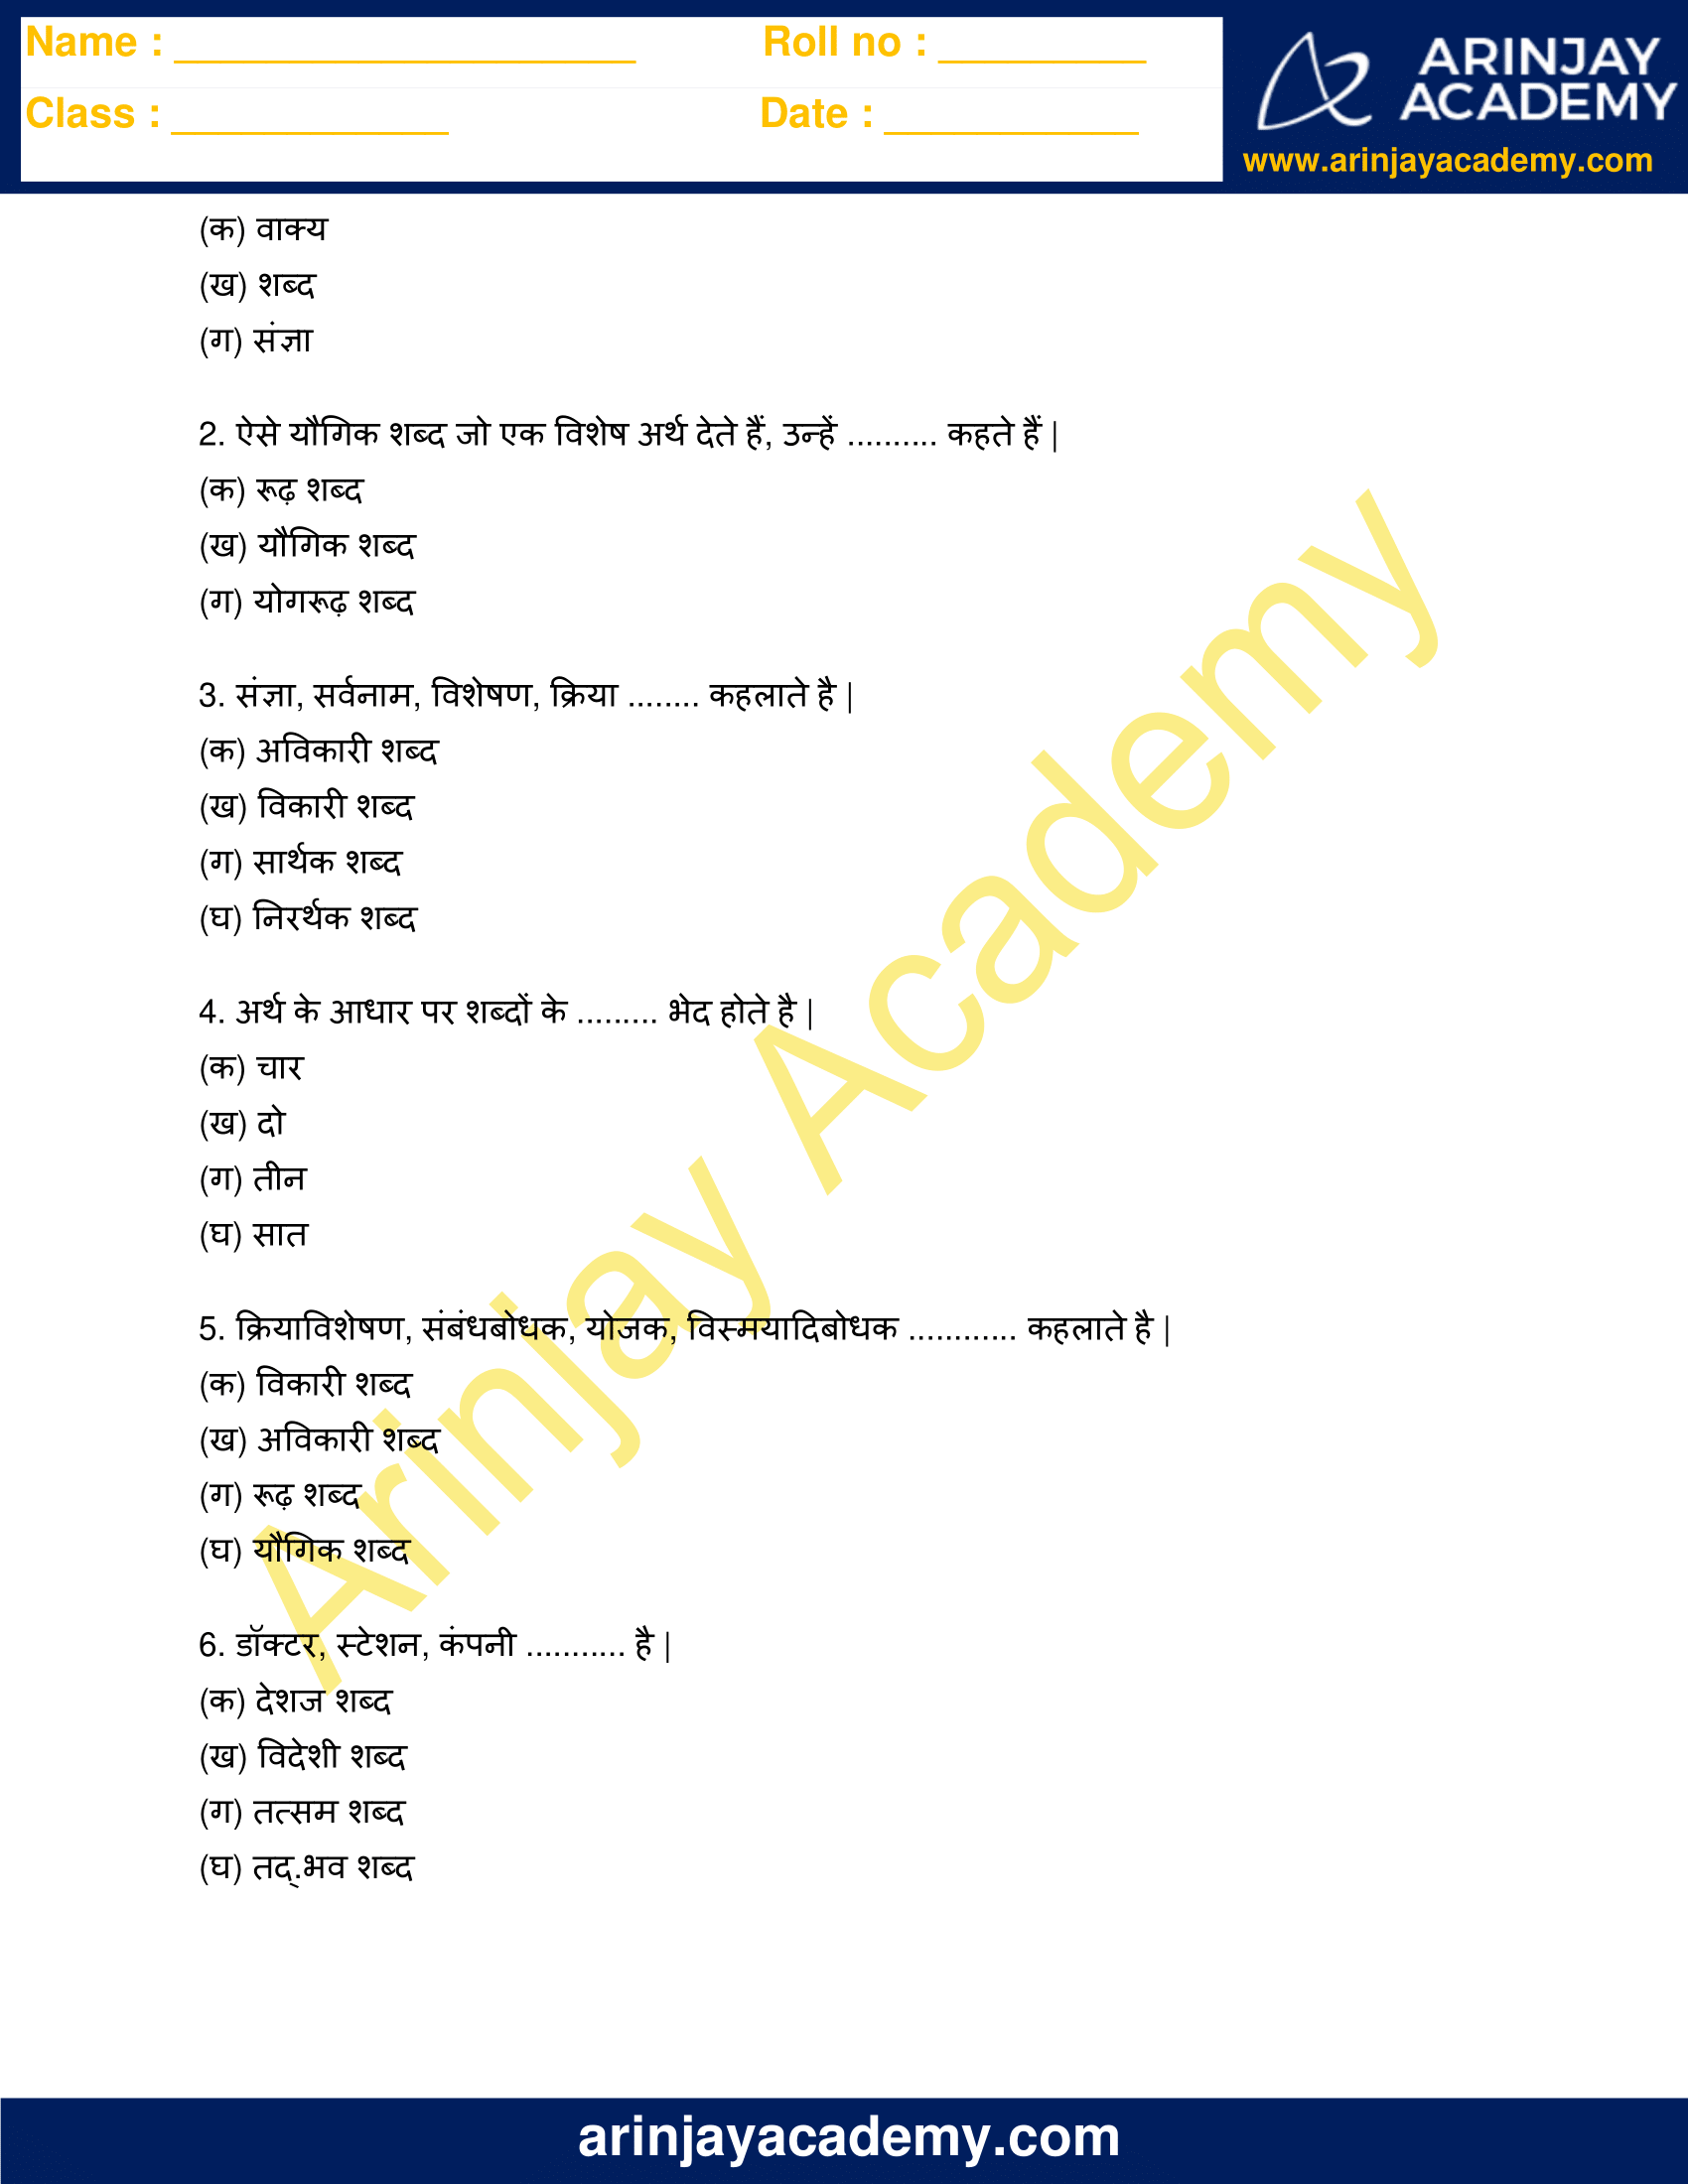 Shabd in Hindi Worksheet for Class 3 image 3